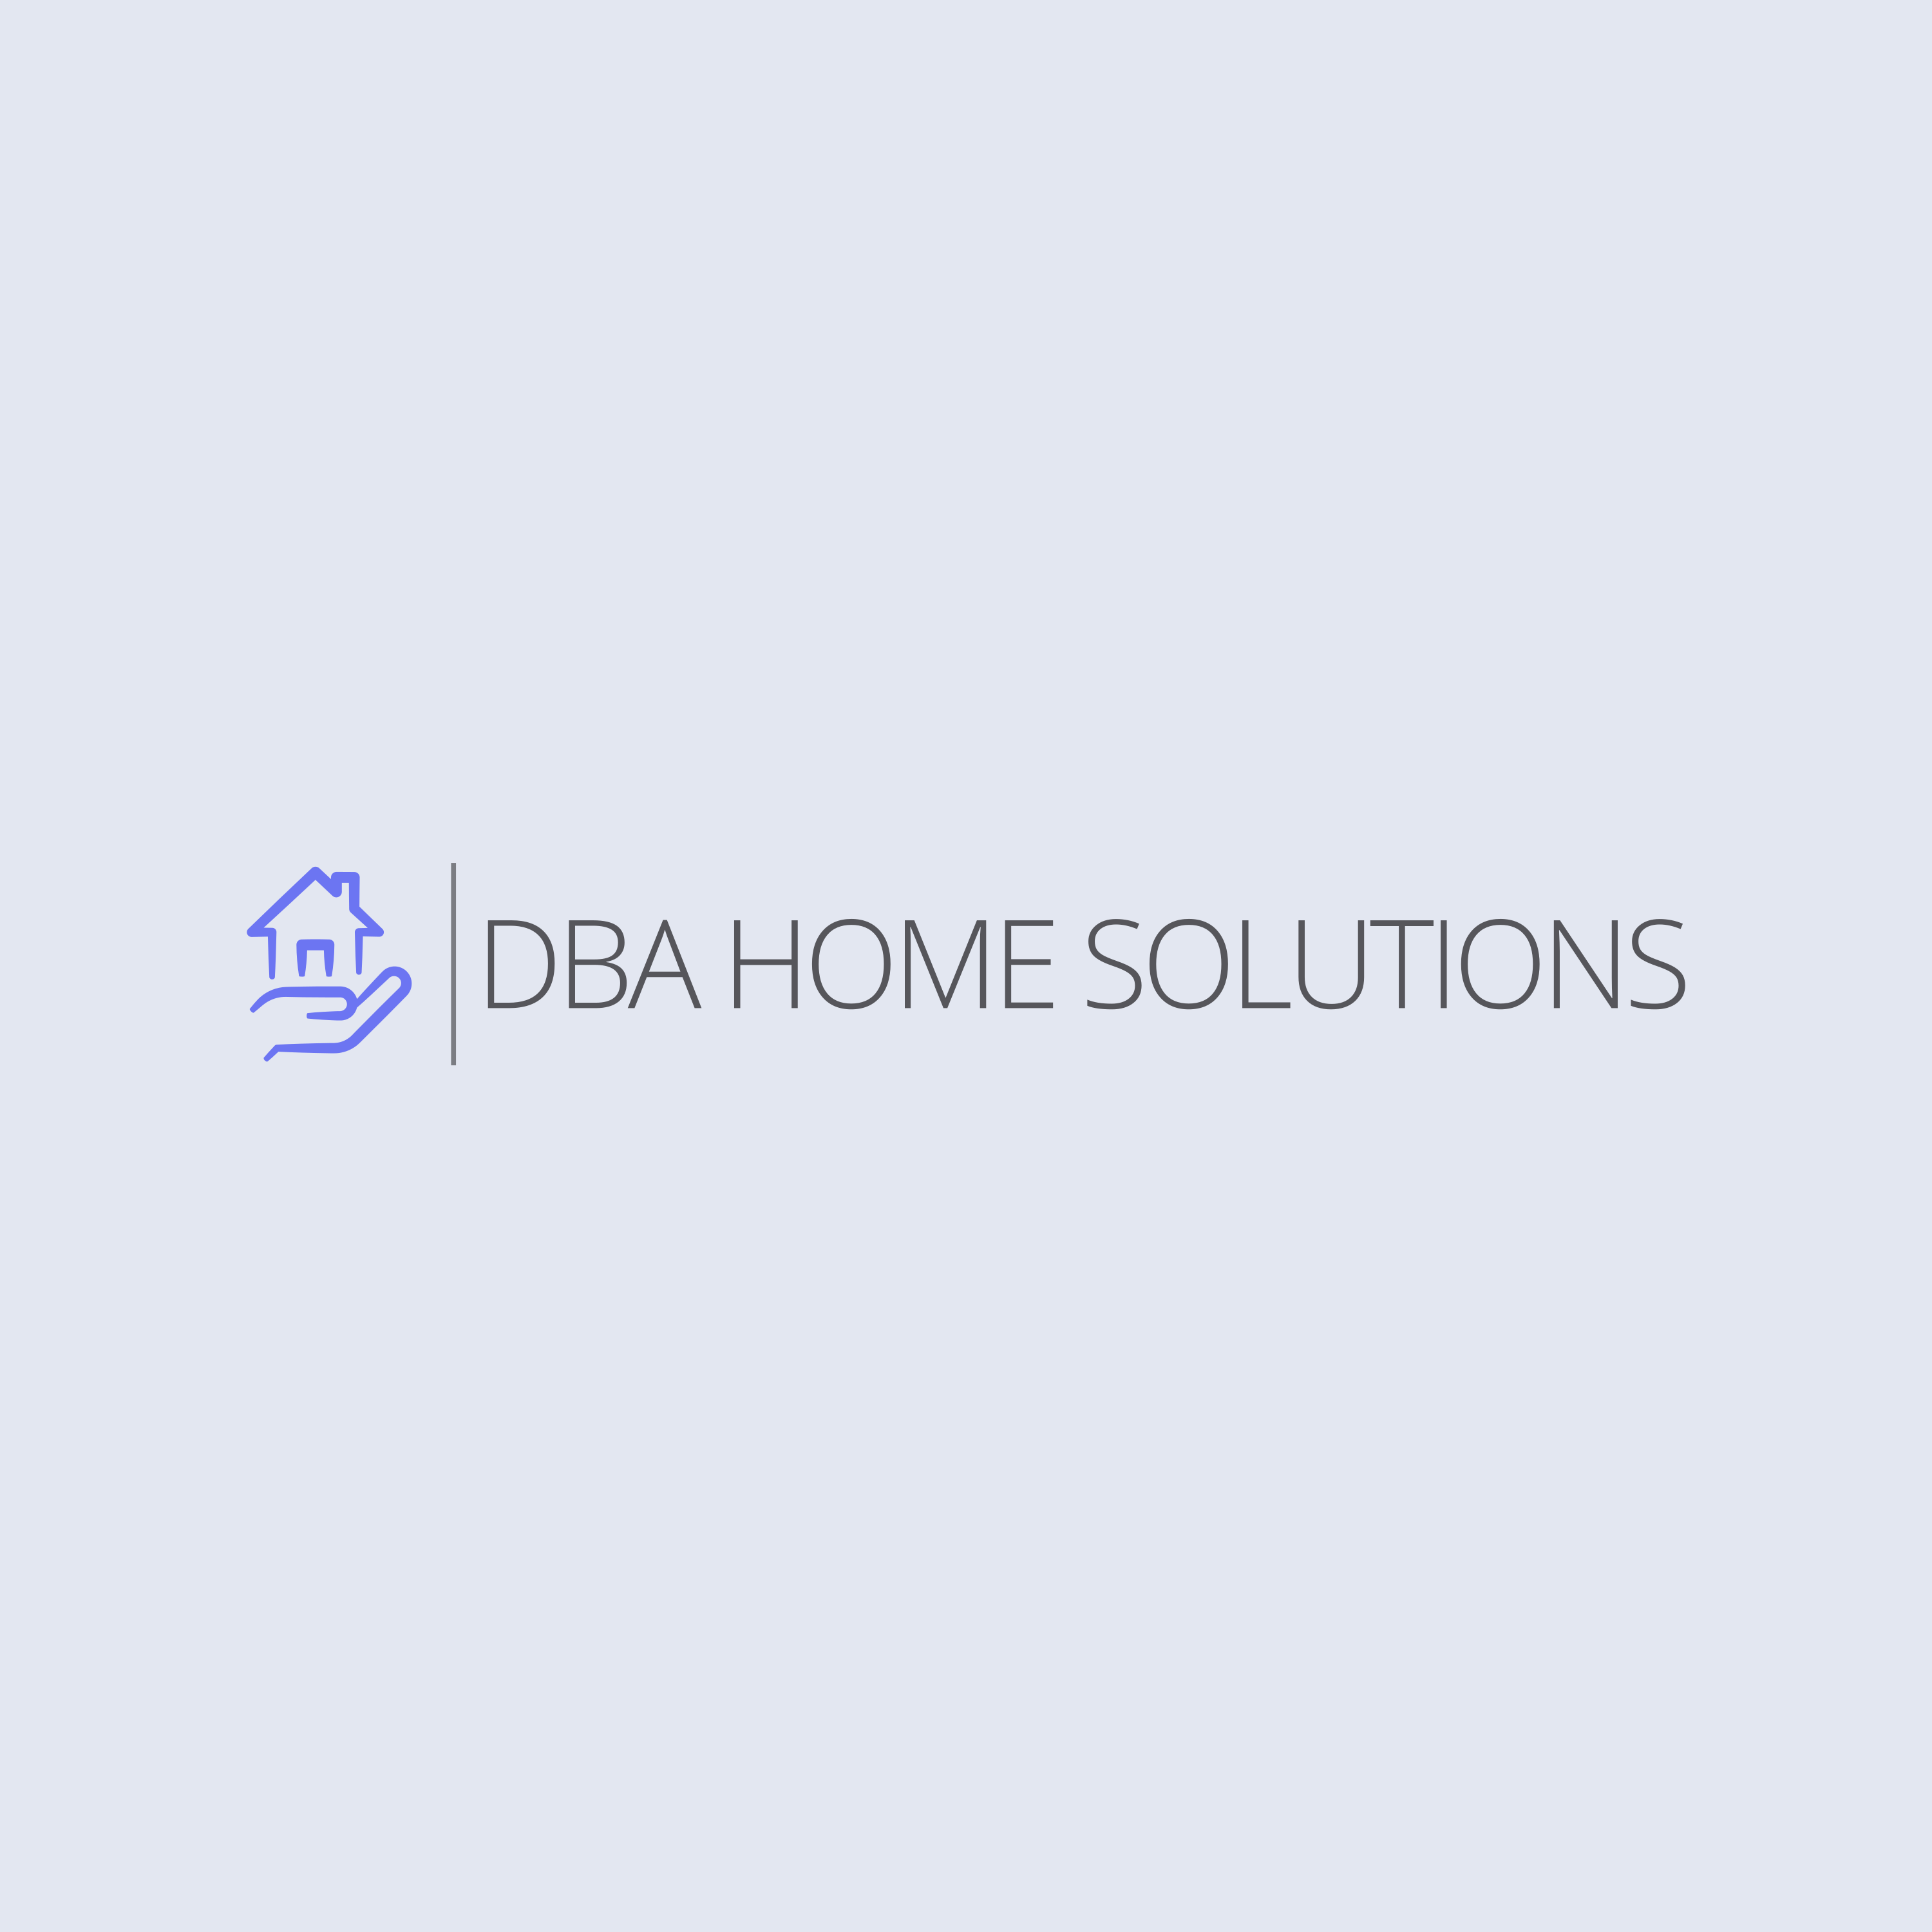 DBA HOME SOLUTIONS